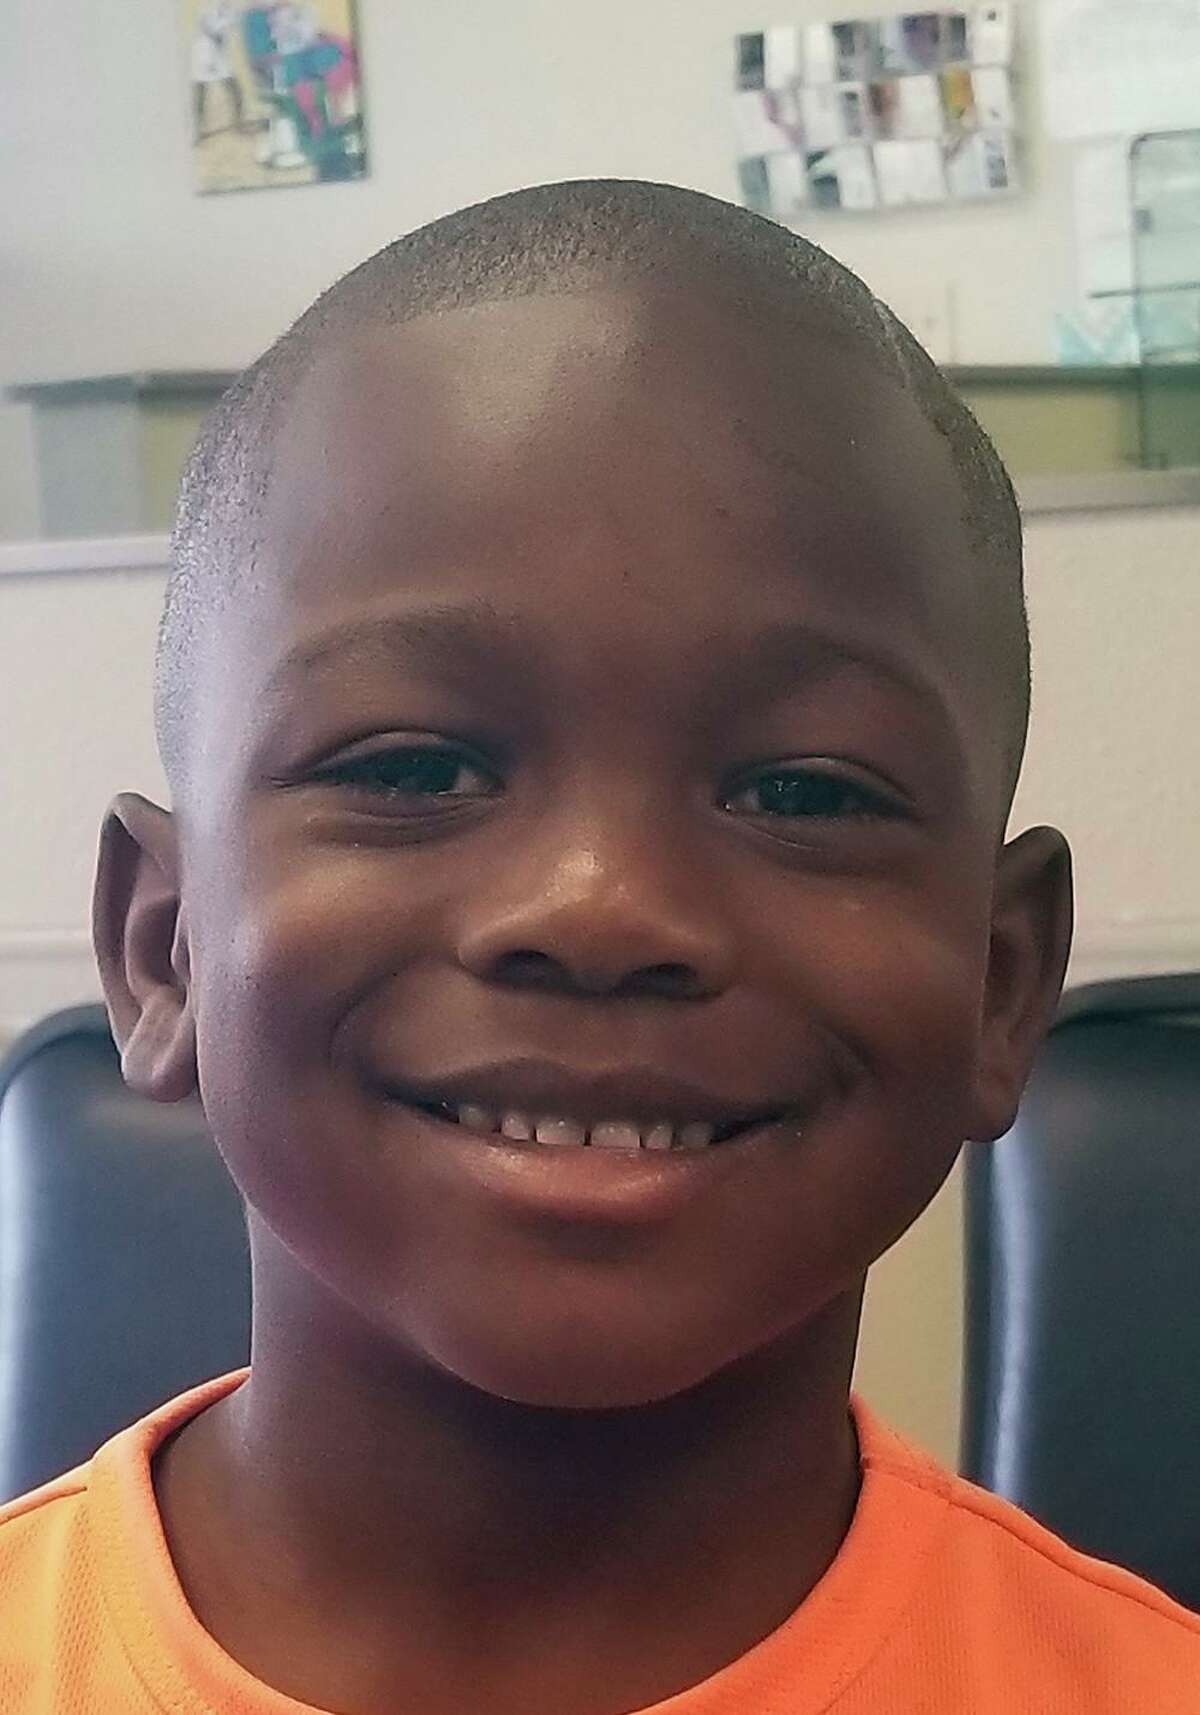 De'Earlvion Whitley is shown in a photo provided by the family. The 4-year-old was shot and killed by a bullet fired in a drive-by shooting.